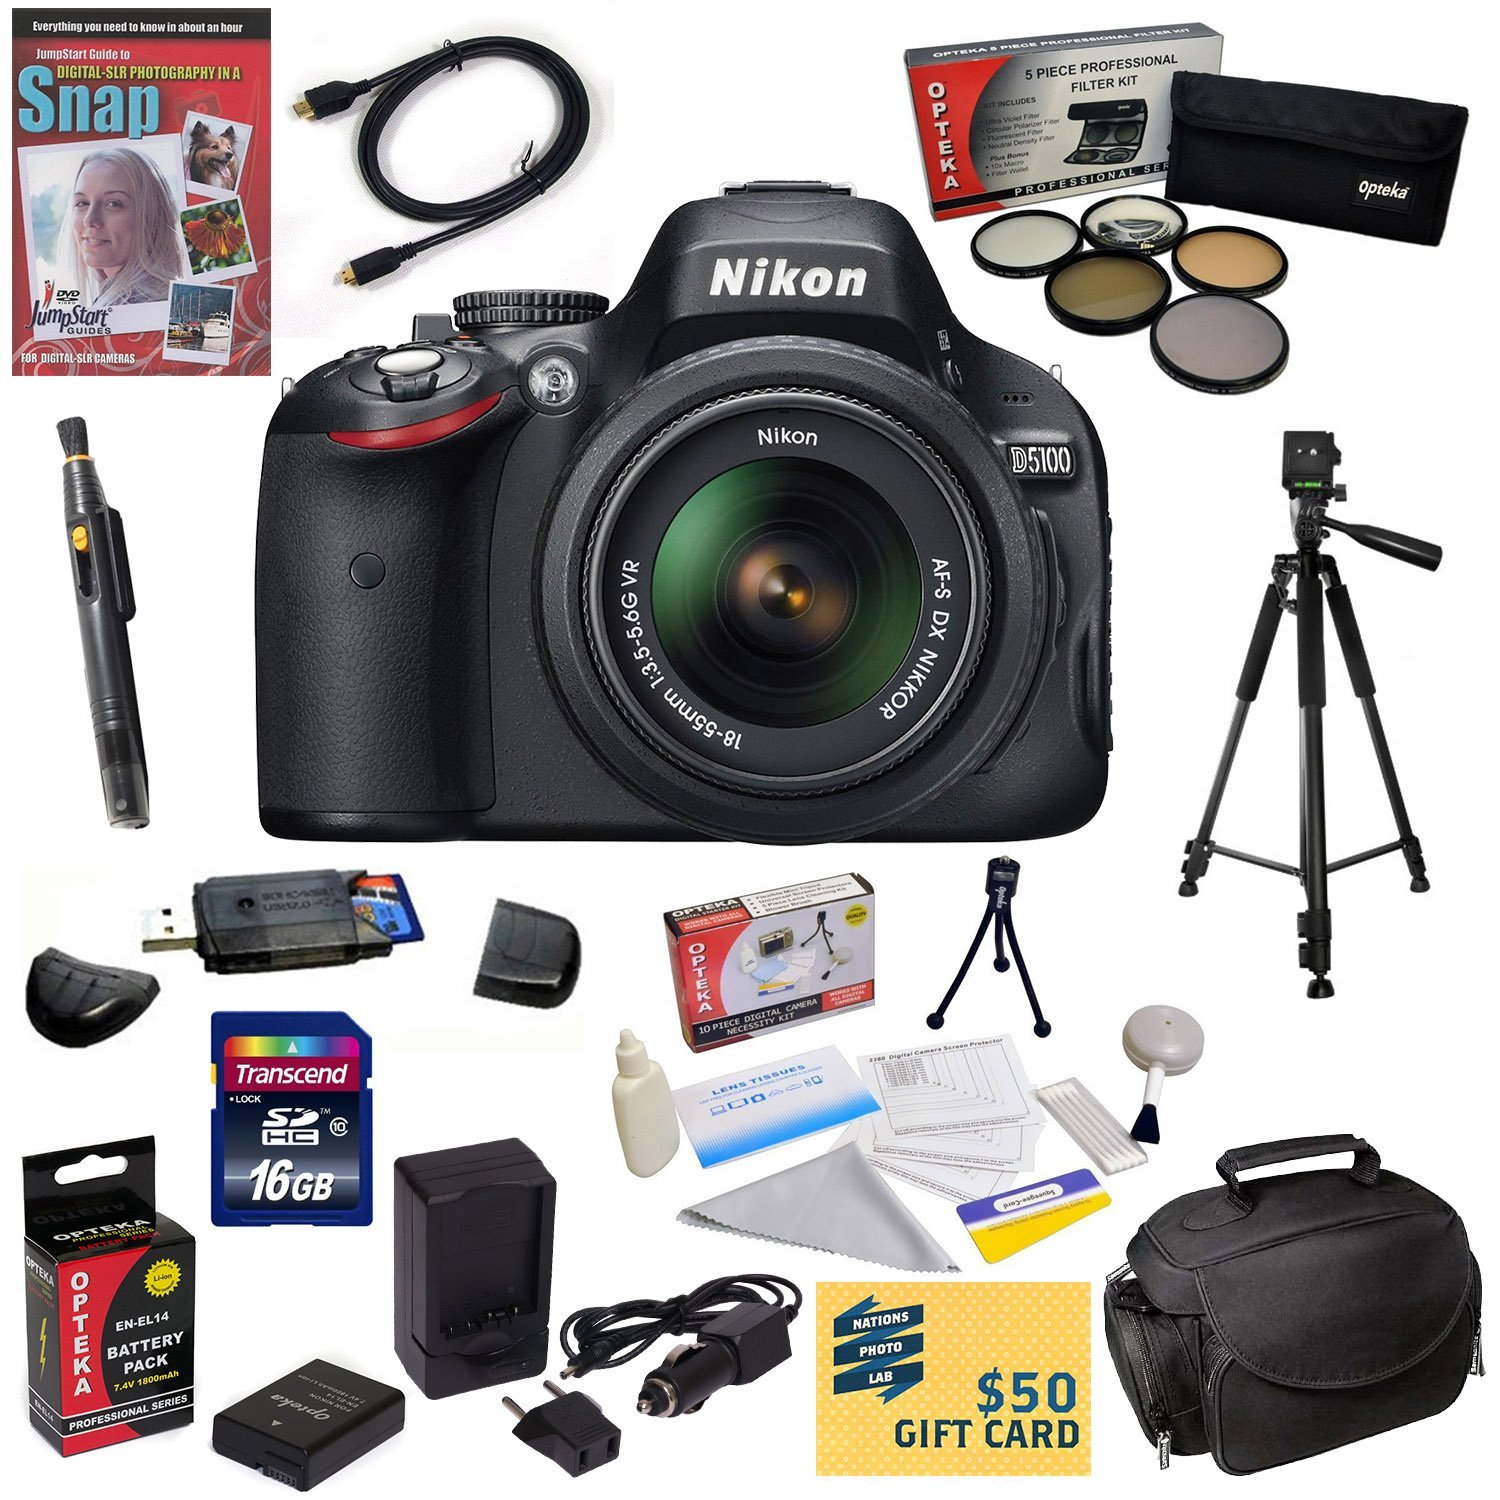 Nikon D5100 Digital SLR Camera with 18-55mm NIKKOR VR Lens with16GB High-Speed SDHC Card, Reader, Extra Battery, Charger, 5 PC Filter, HDMI Cable, Case, Tripod, Cleaning Kit, DVD, $50 Gift Card, More